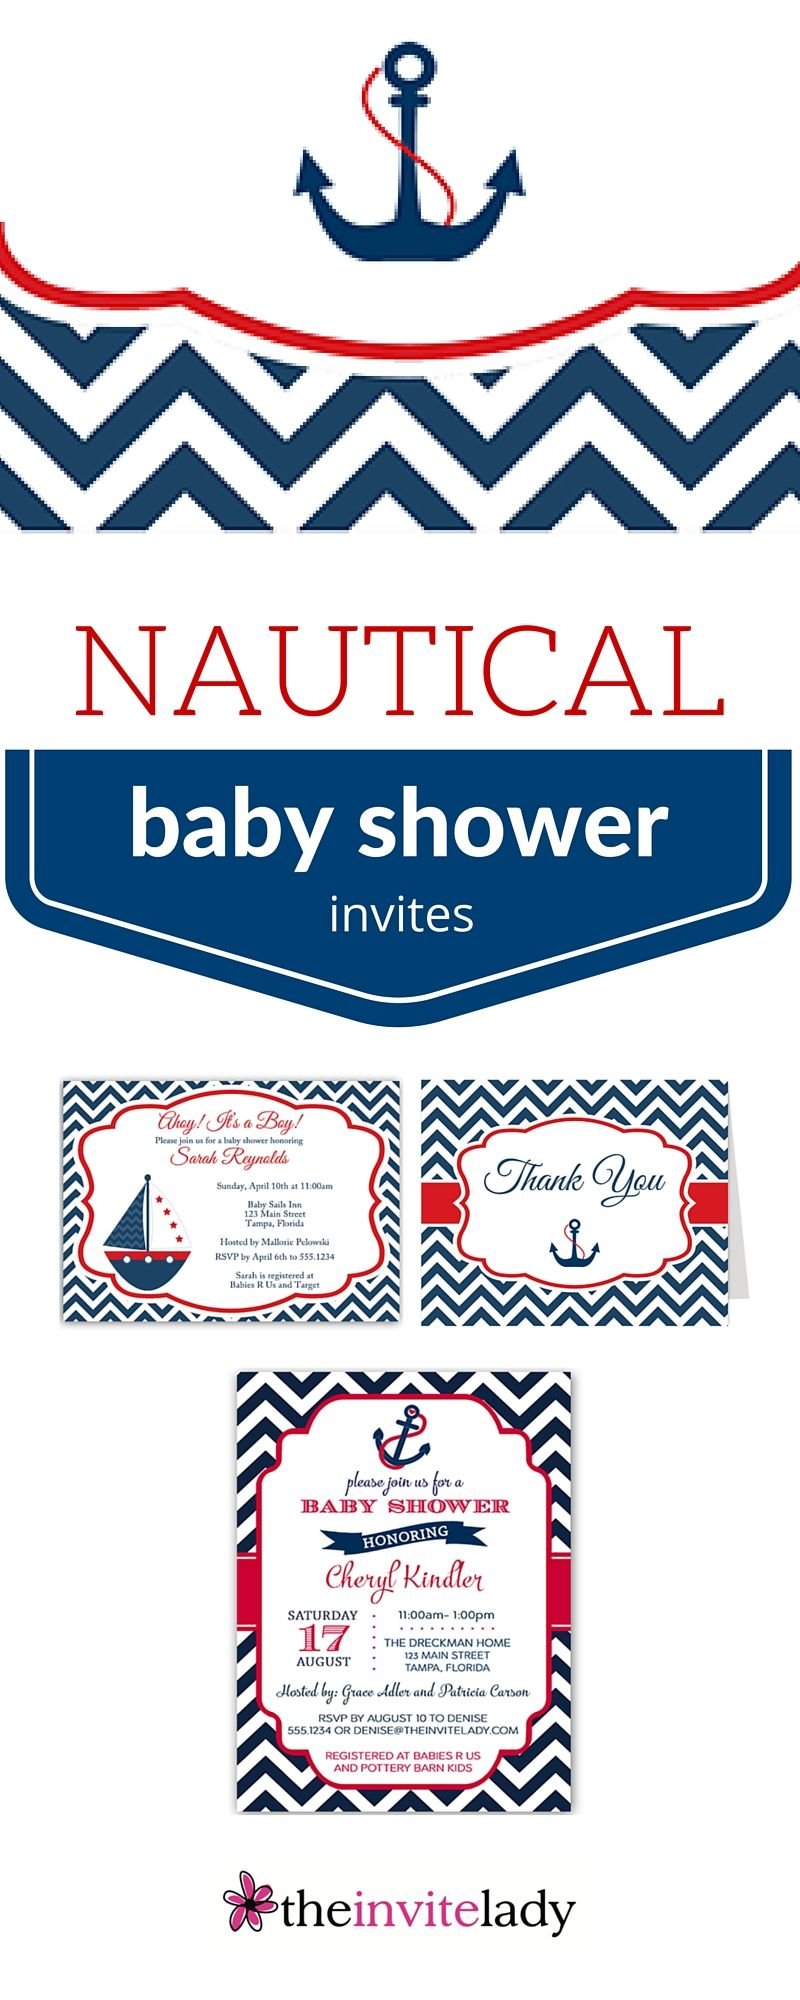 Nautical themed baby shower invitations, Thank you cards, mom to be ...